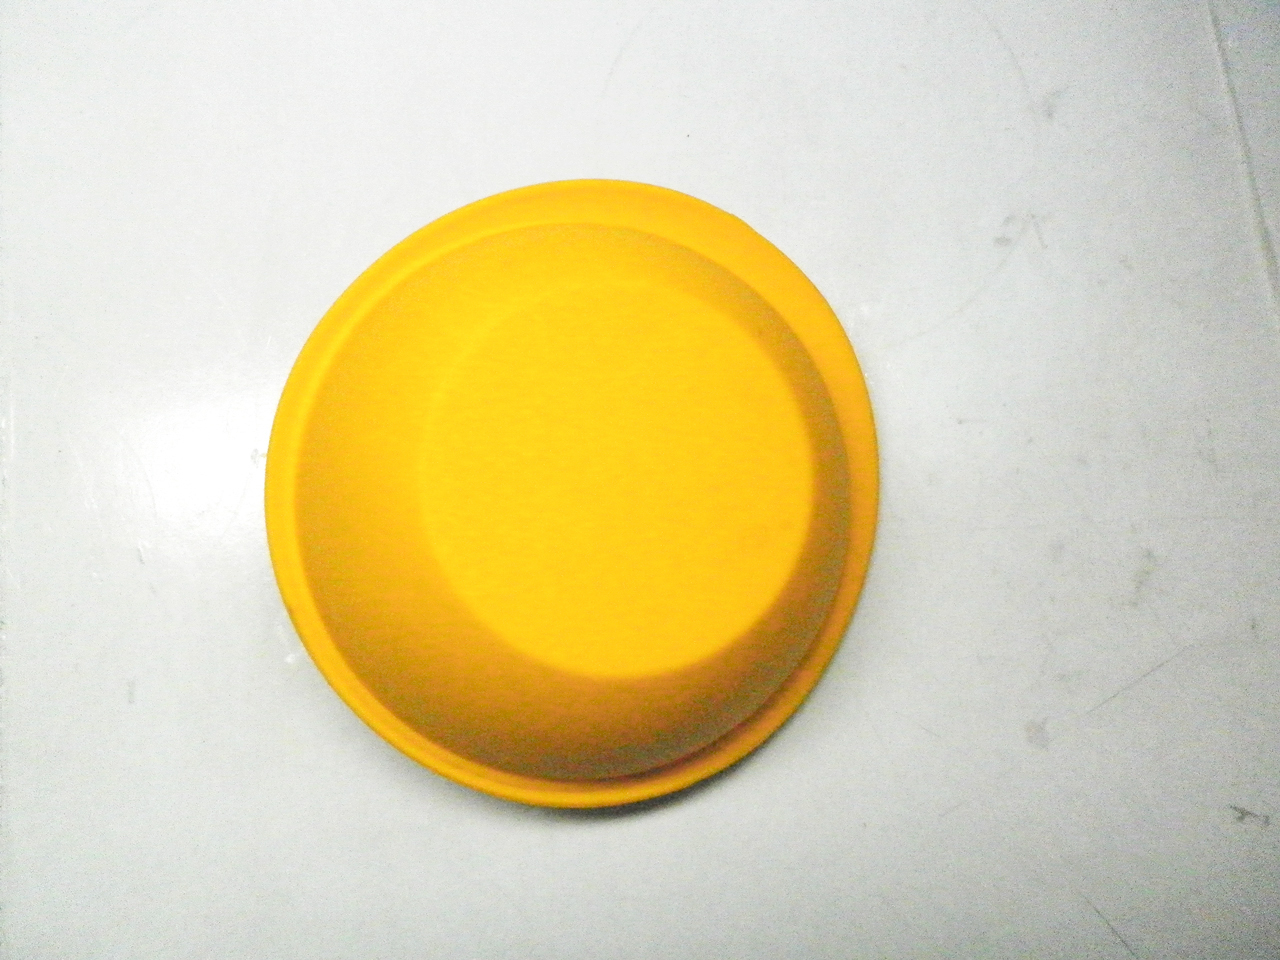 http://www.refinehksilicone.cn/data/images/product/20180418100322_685.jpg